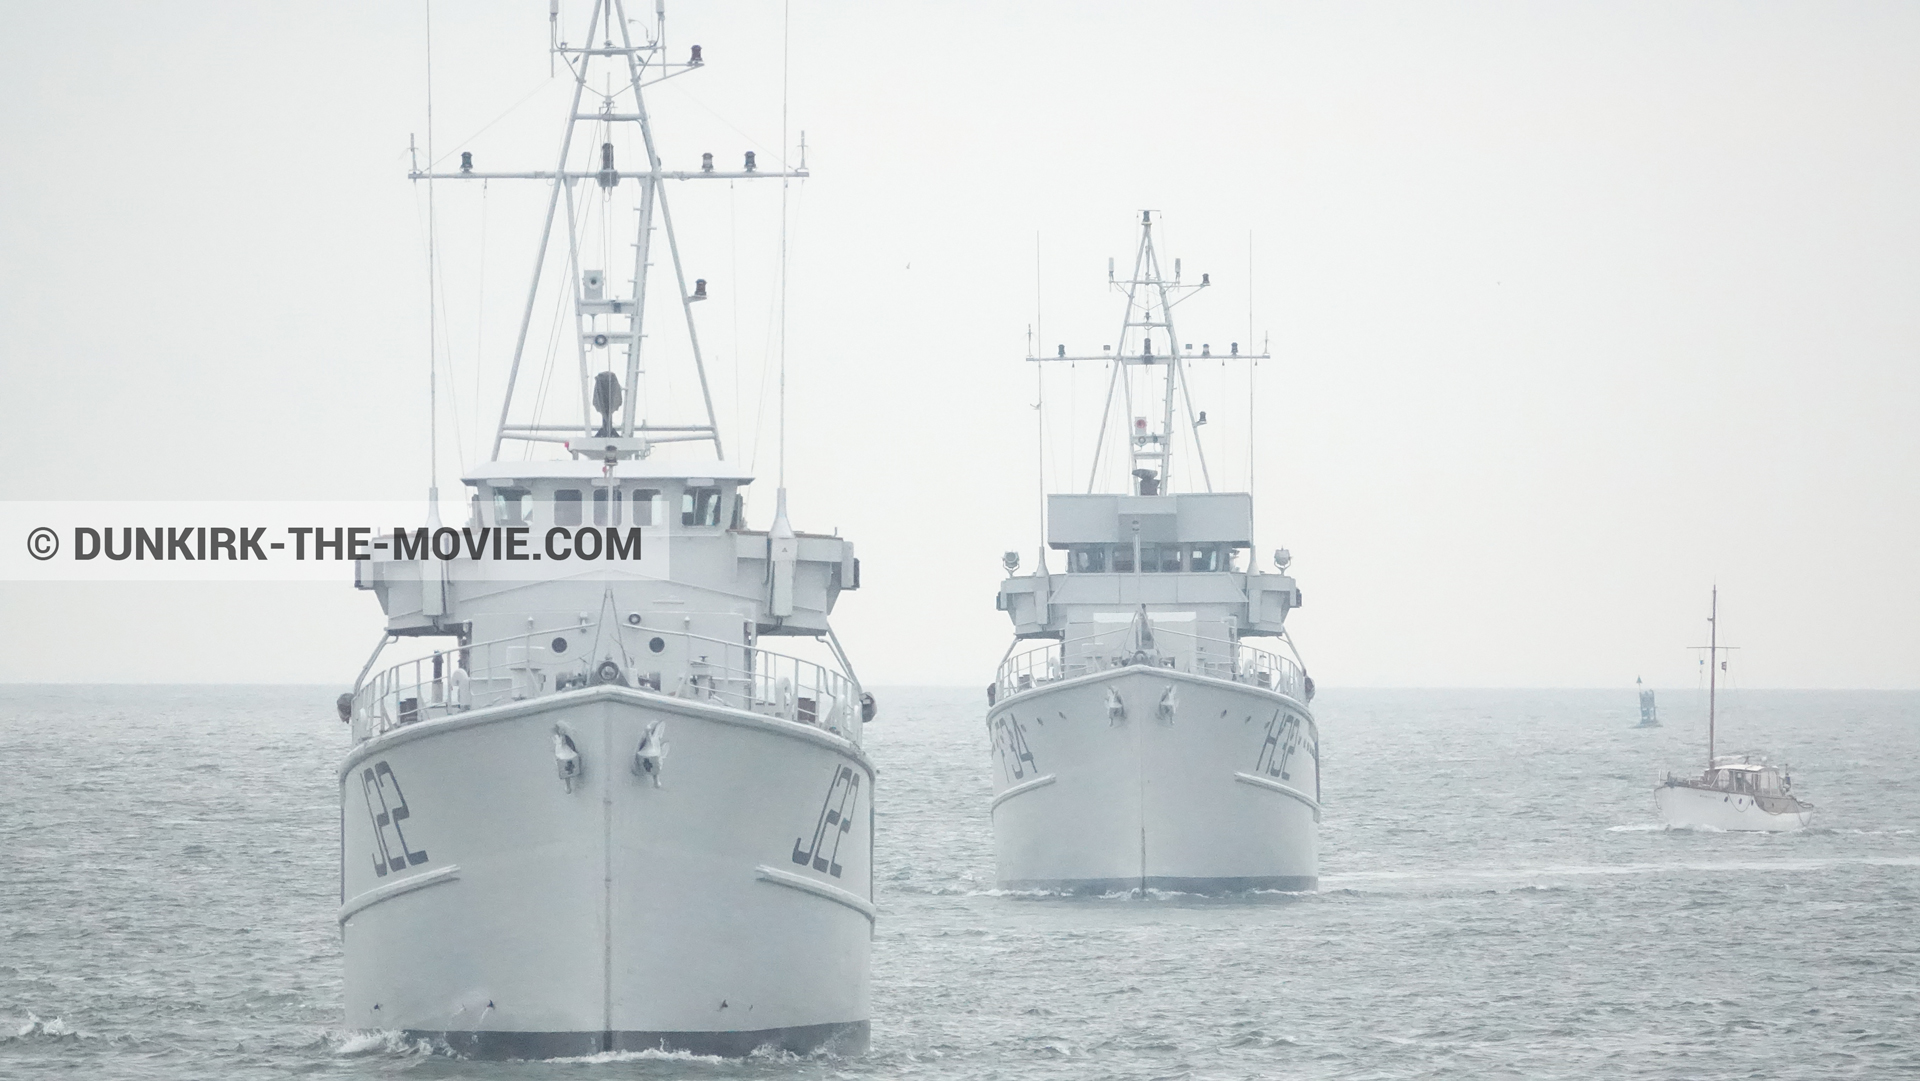 Picture with boat, F34 - Hr.Ms. Sittard, H32 - Hr.Ms. Sittard, J22 -Hr.Ms. Naaldwijk, calm sea,  from behind the scene of the Dunkirk movie by Nolan